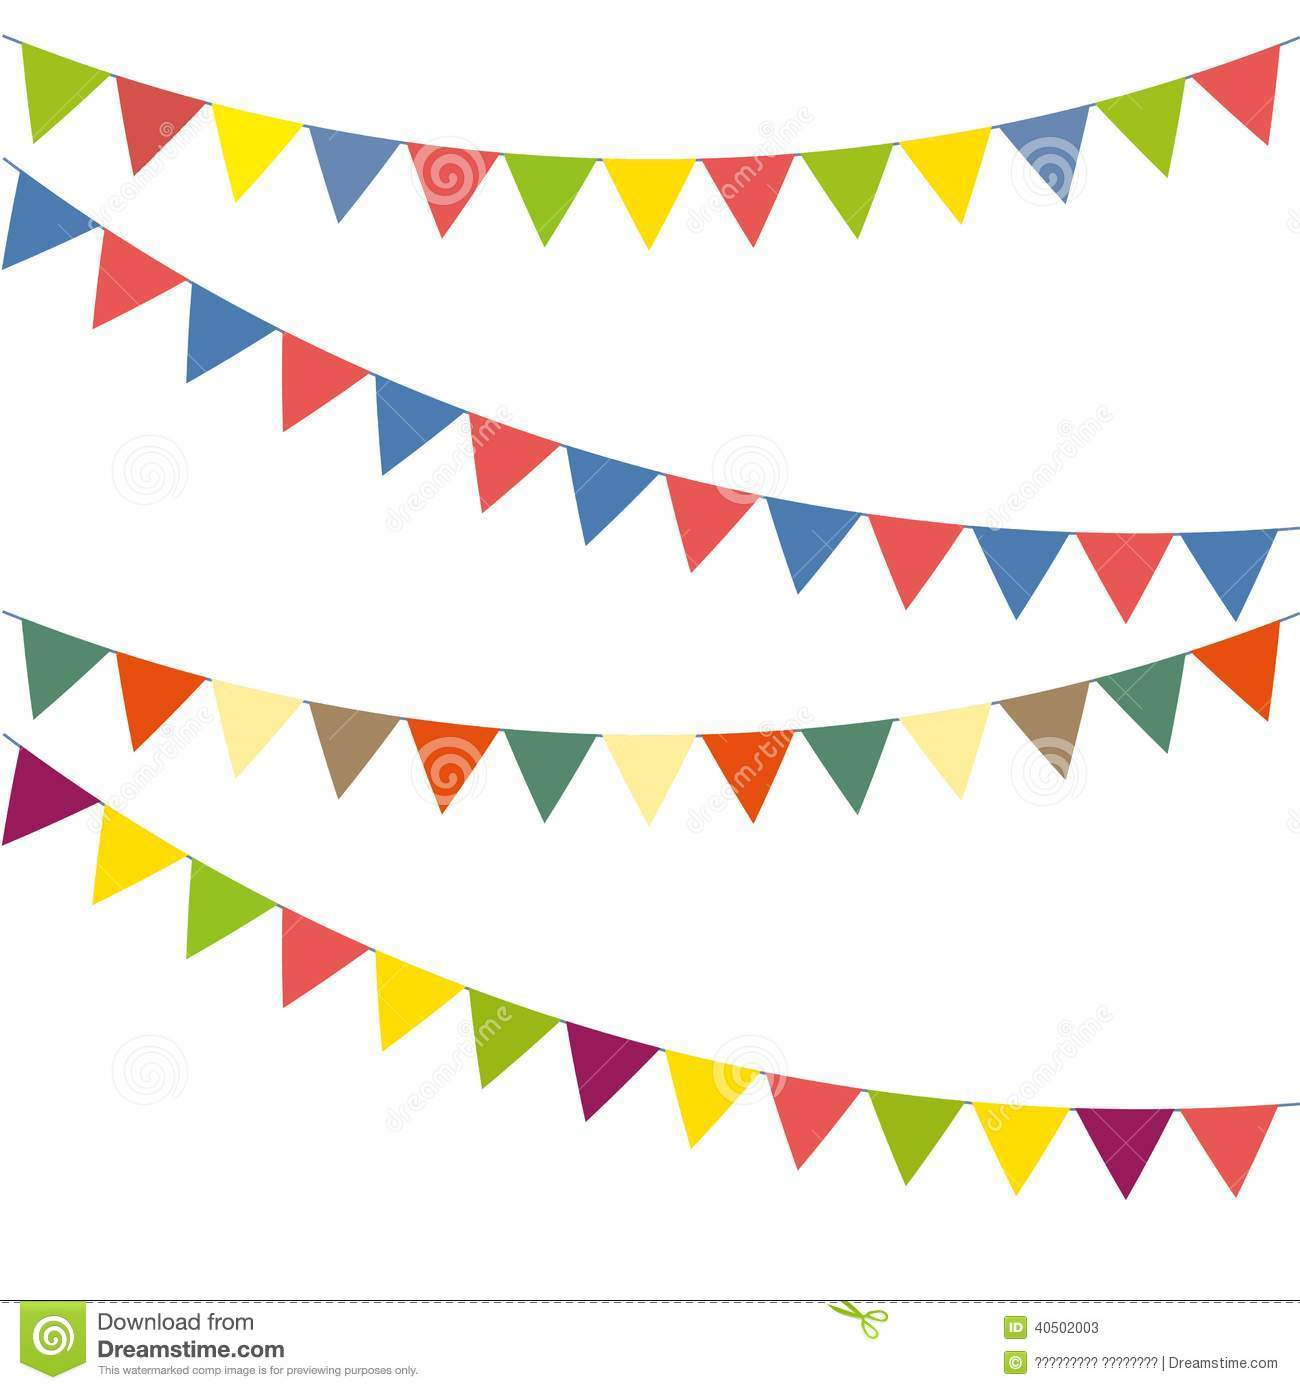 Bunting colorful set stock vector. Illustration of element - 40502003